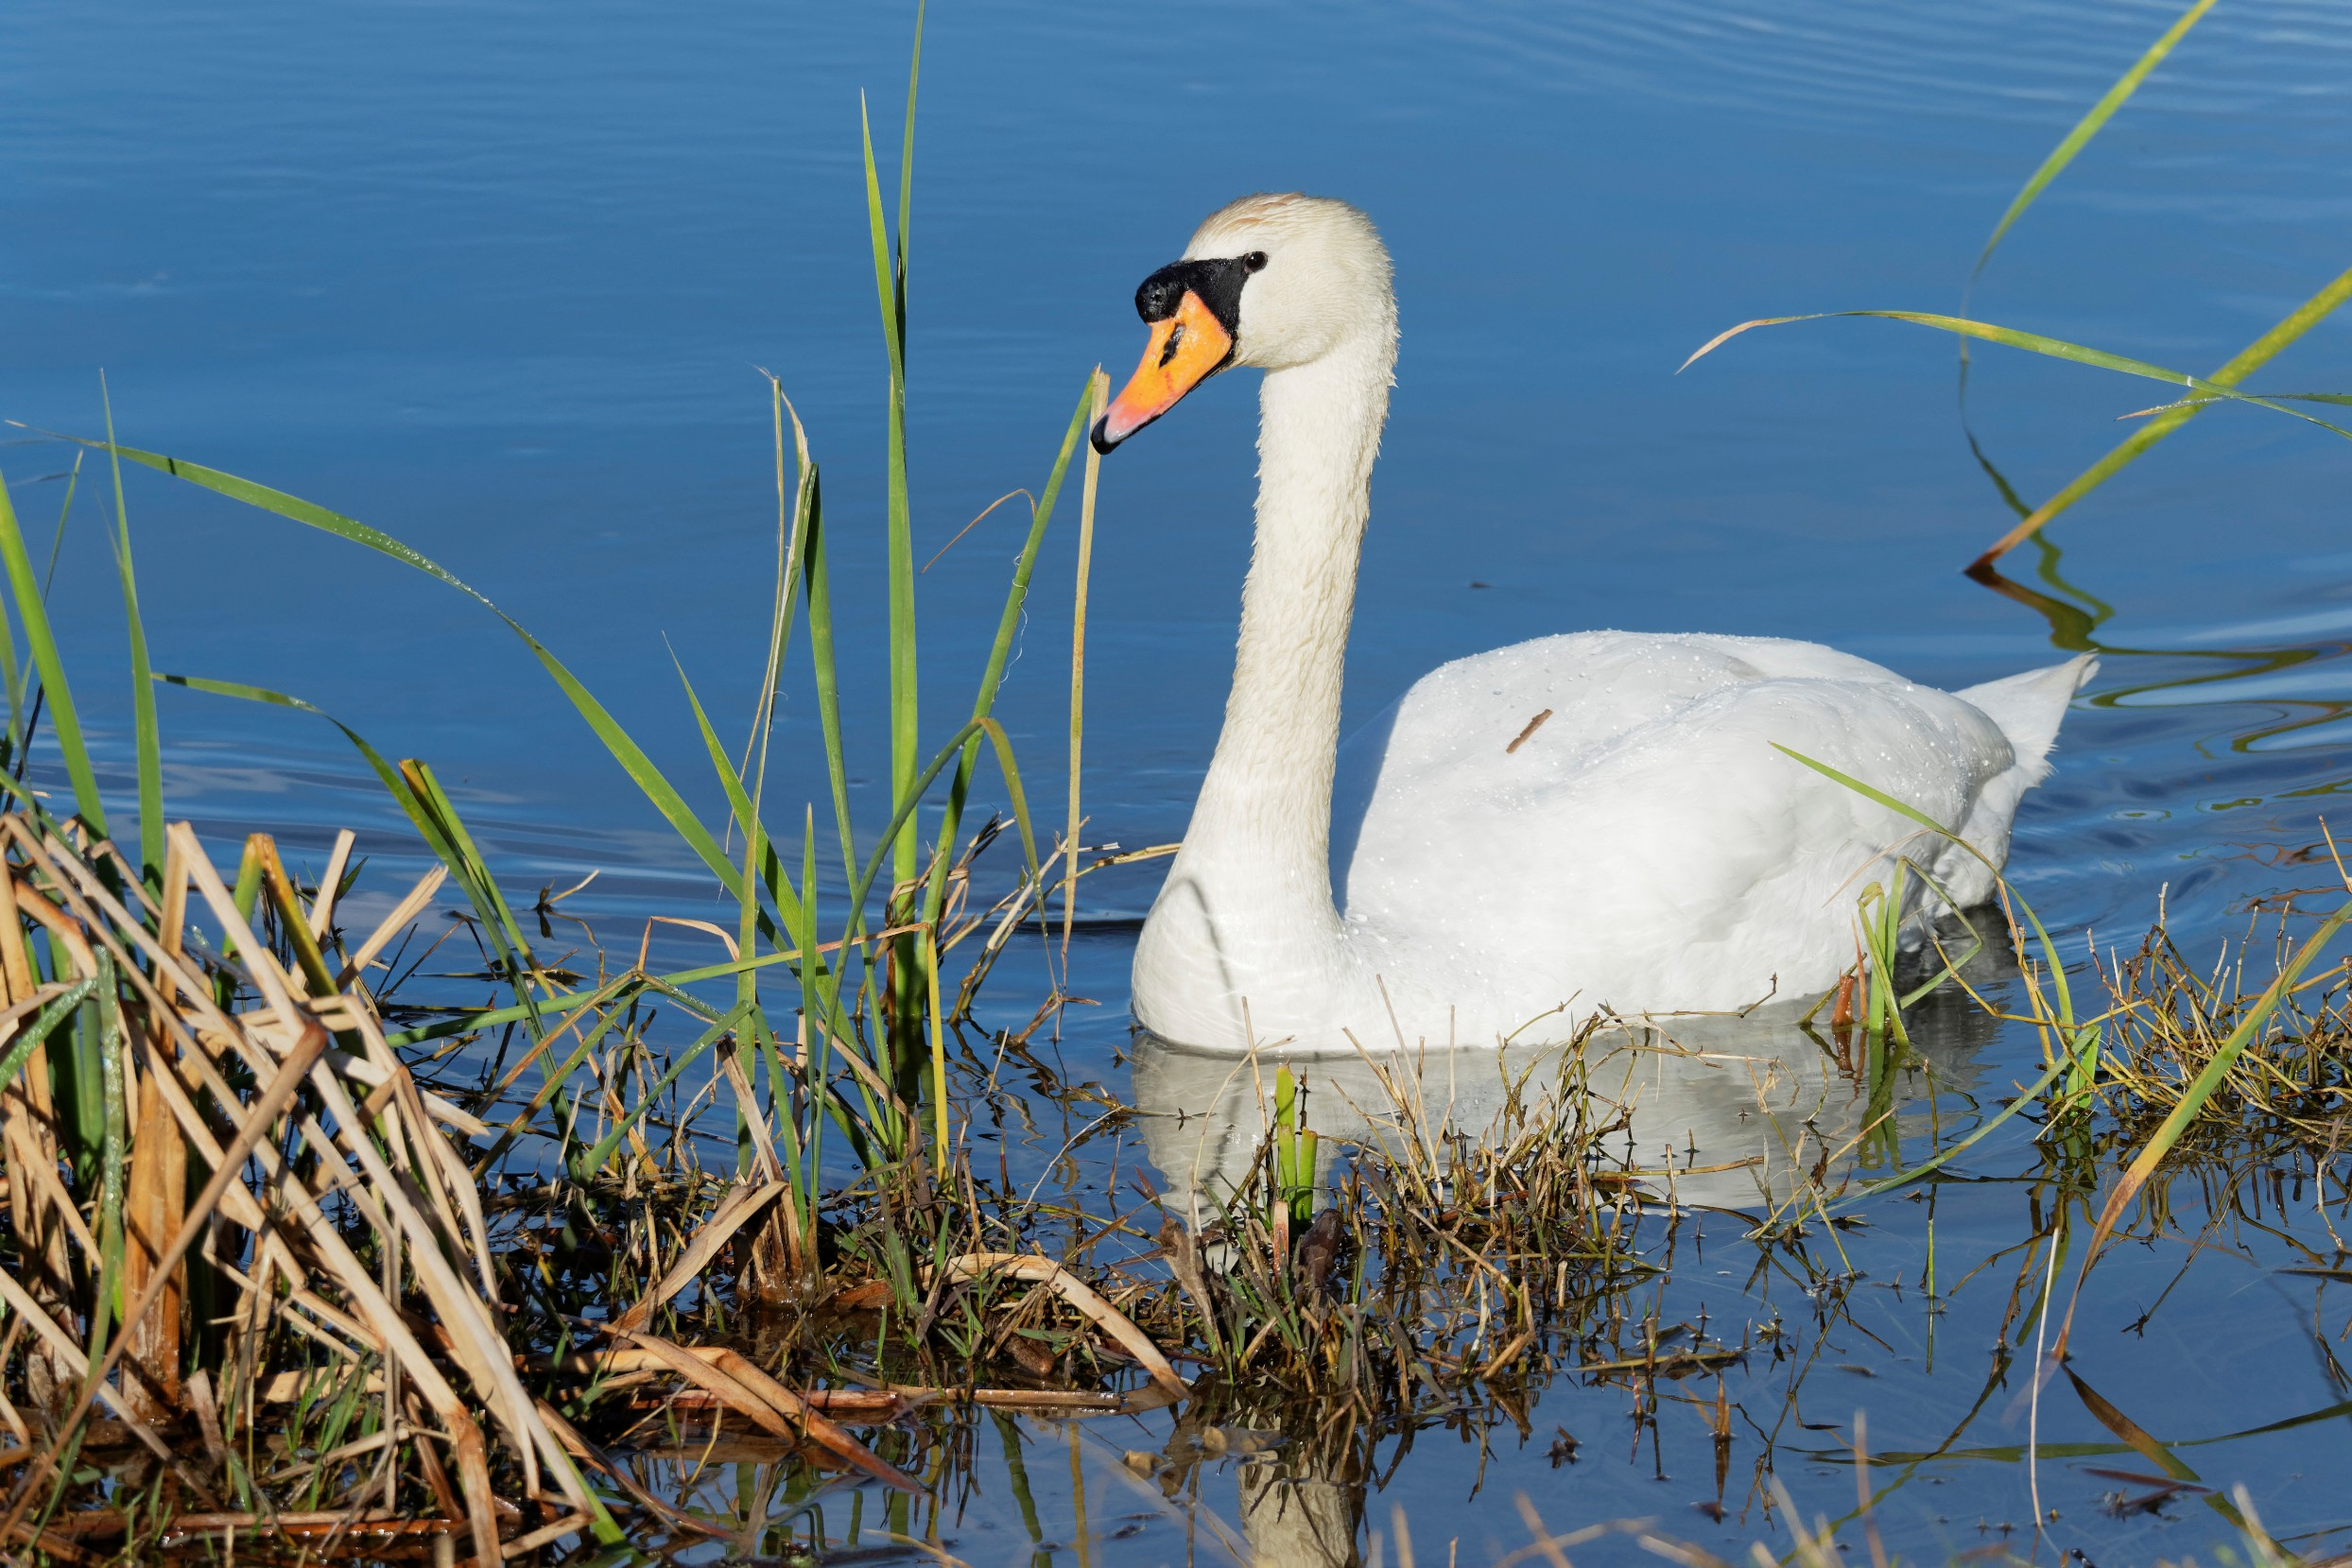 Species: Mute Swan Photo Credit: Dina Perry Date: February 2019 Location: Converse North Park